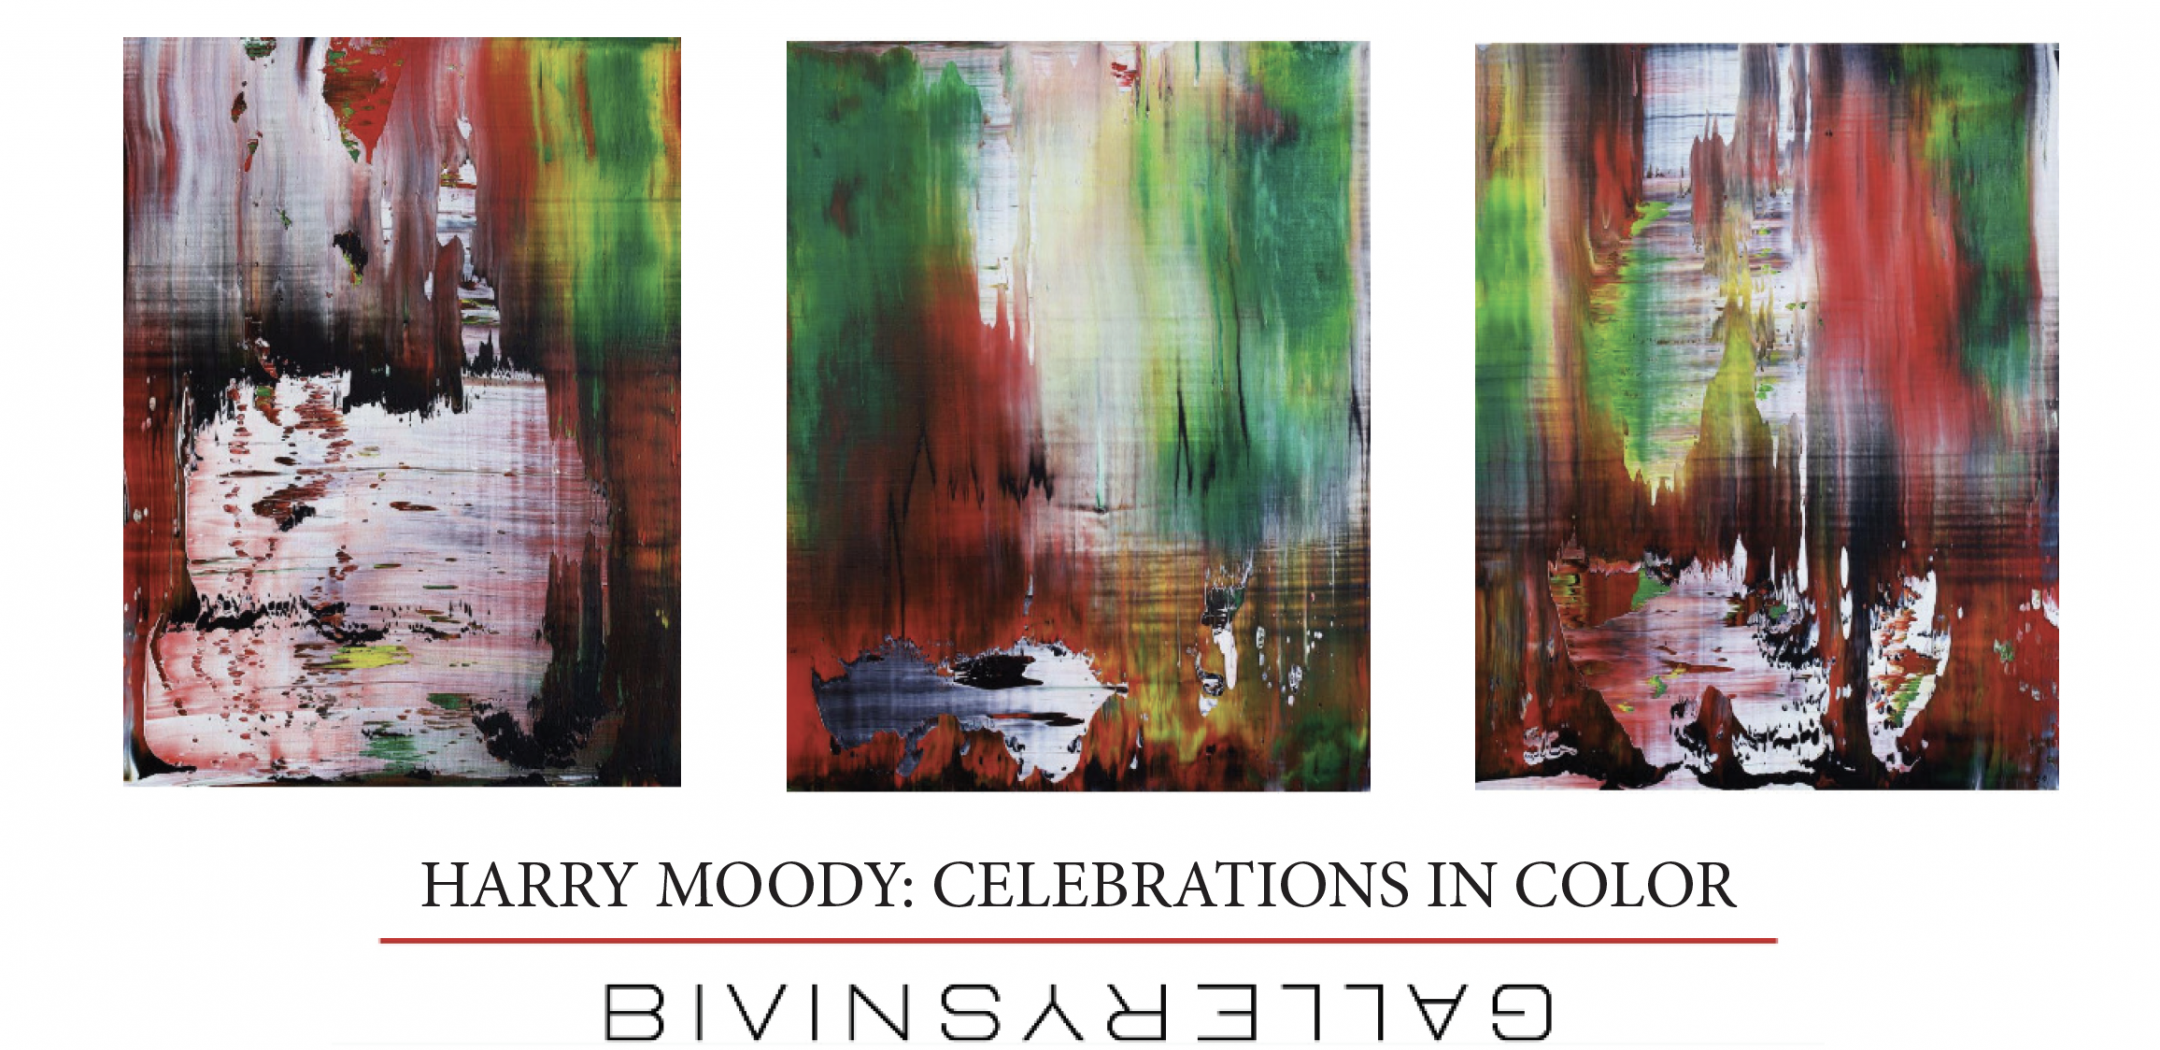 Harry Moody: Celebrations in Color